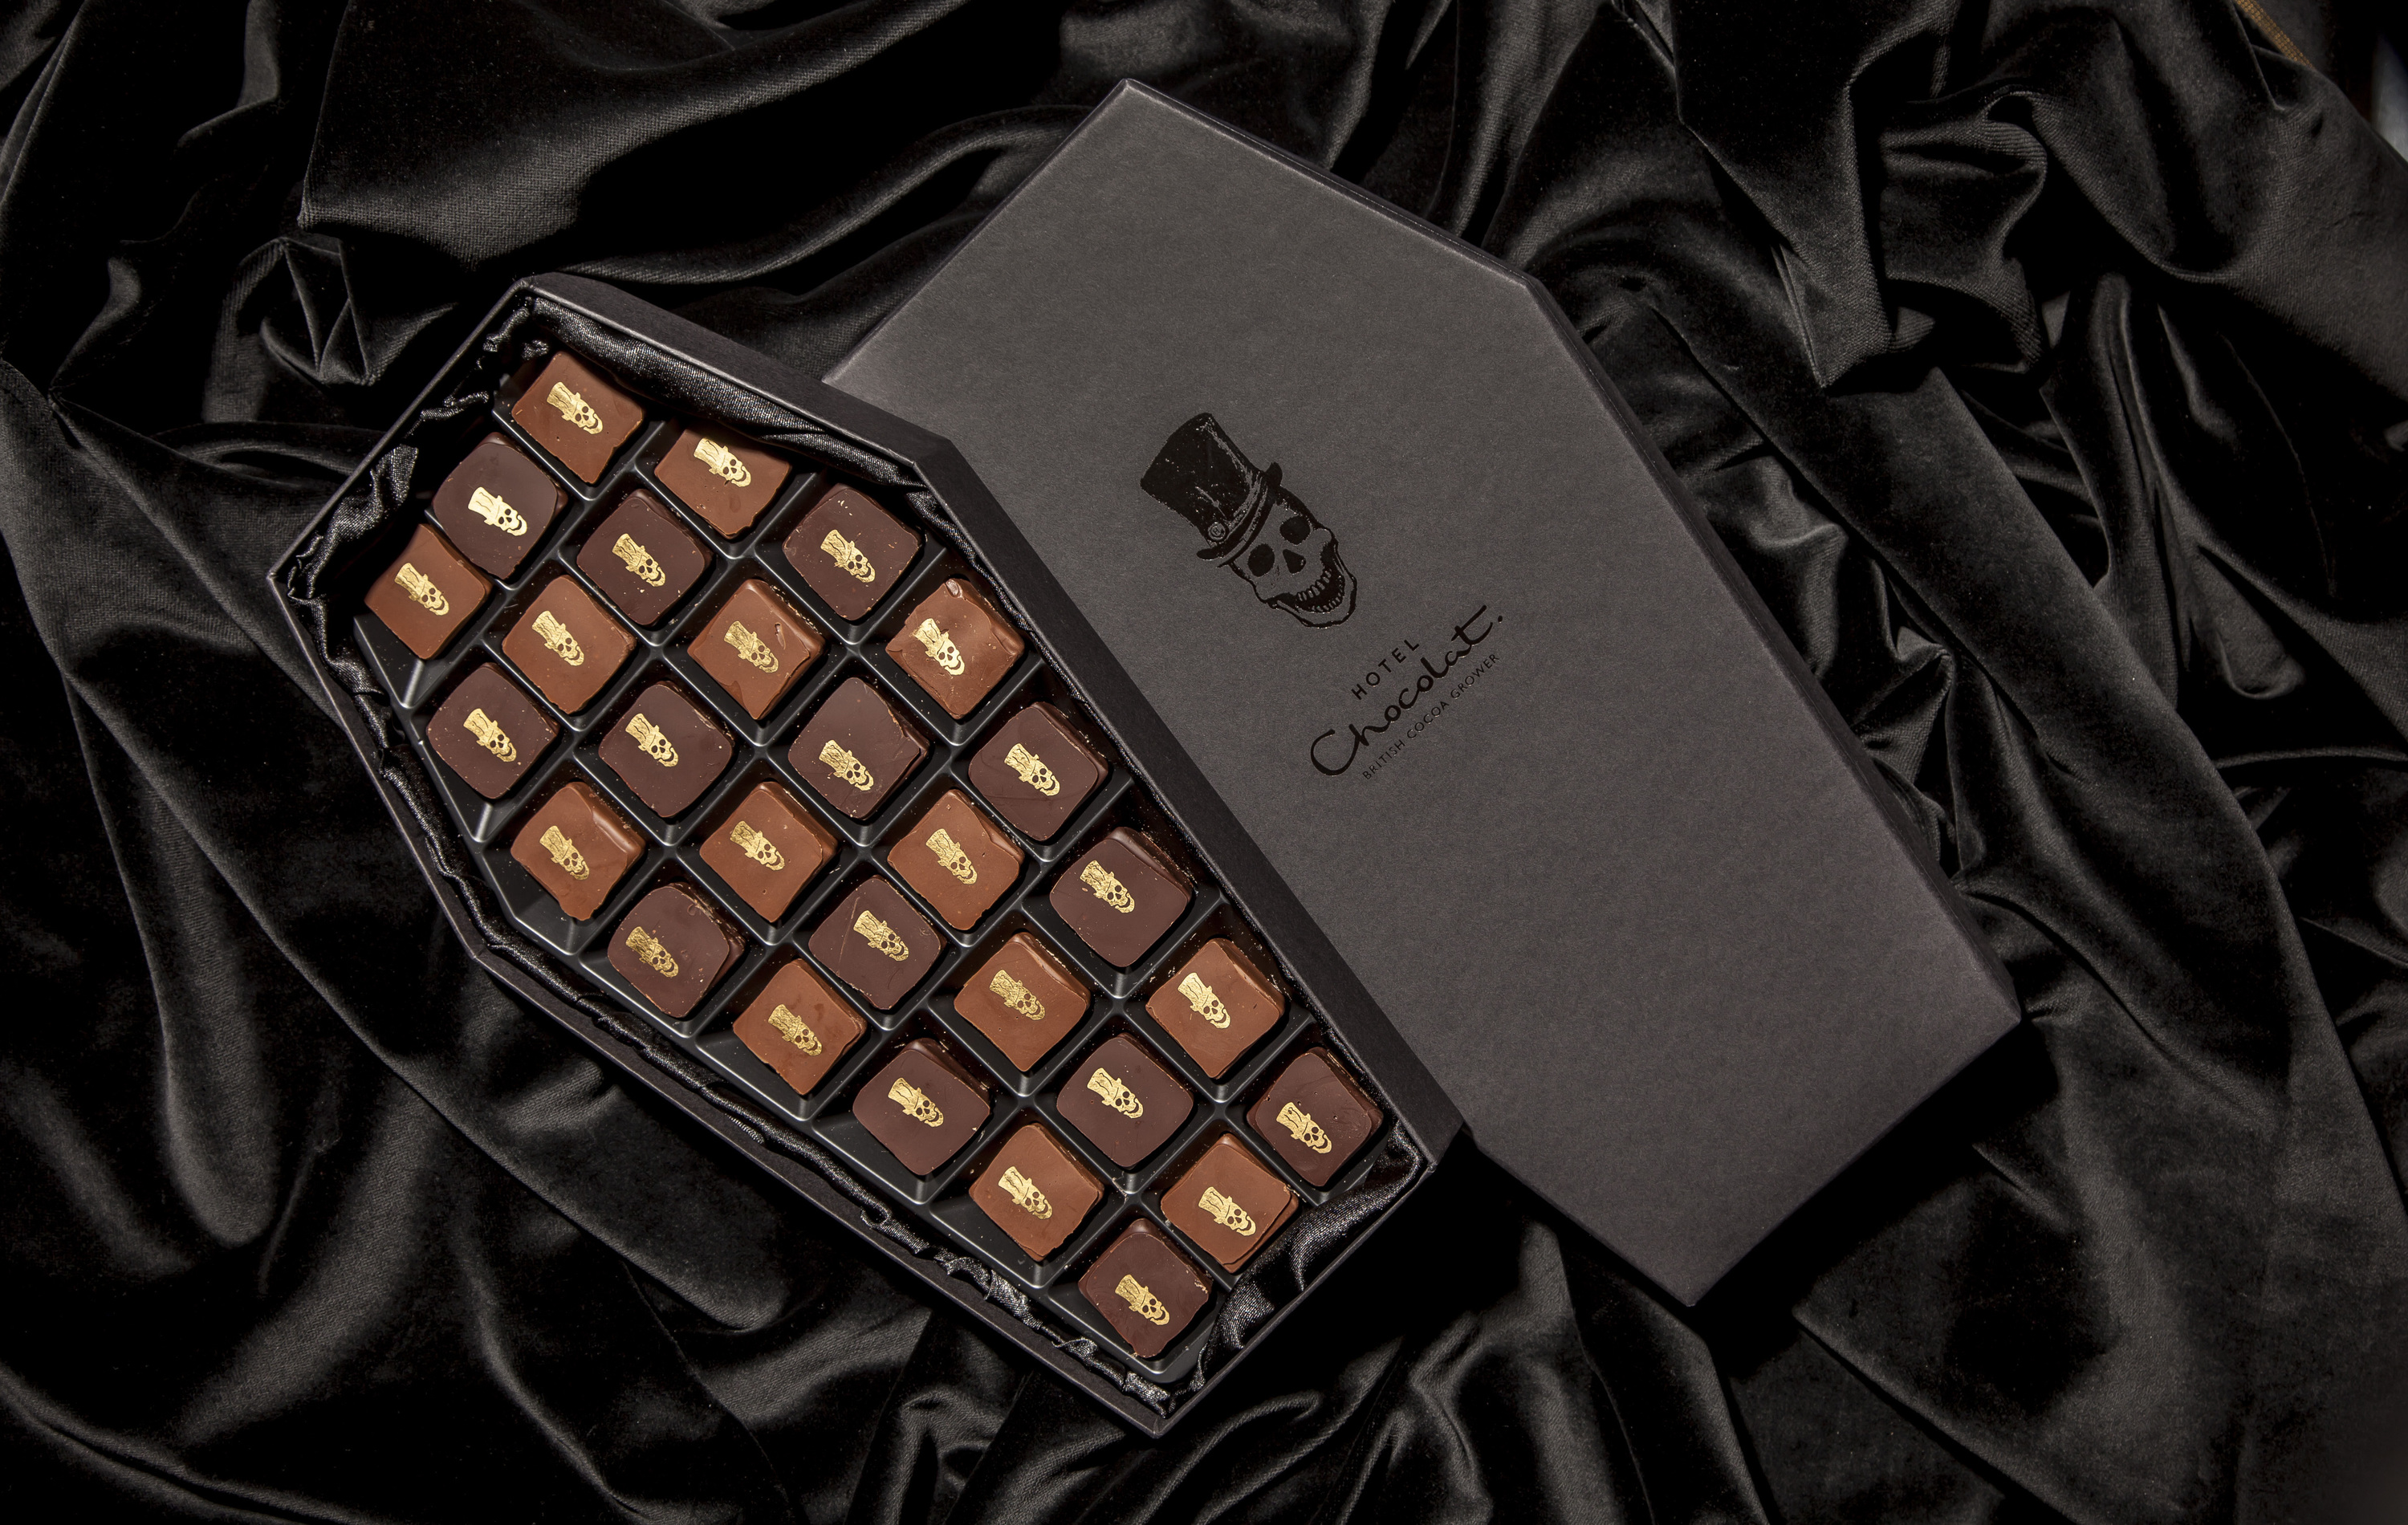 The Coffin Box from Hotel Chocolat